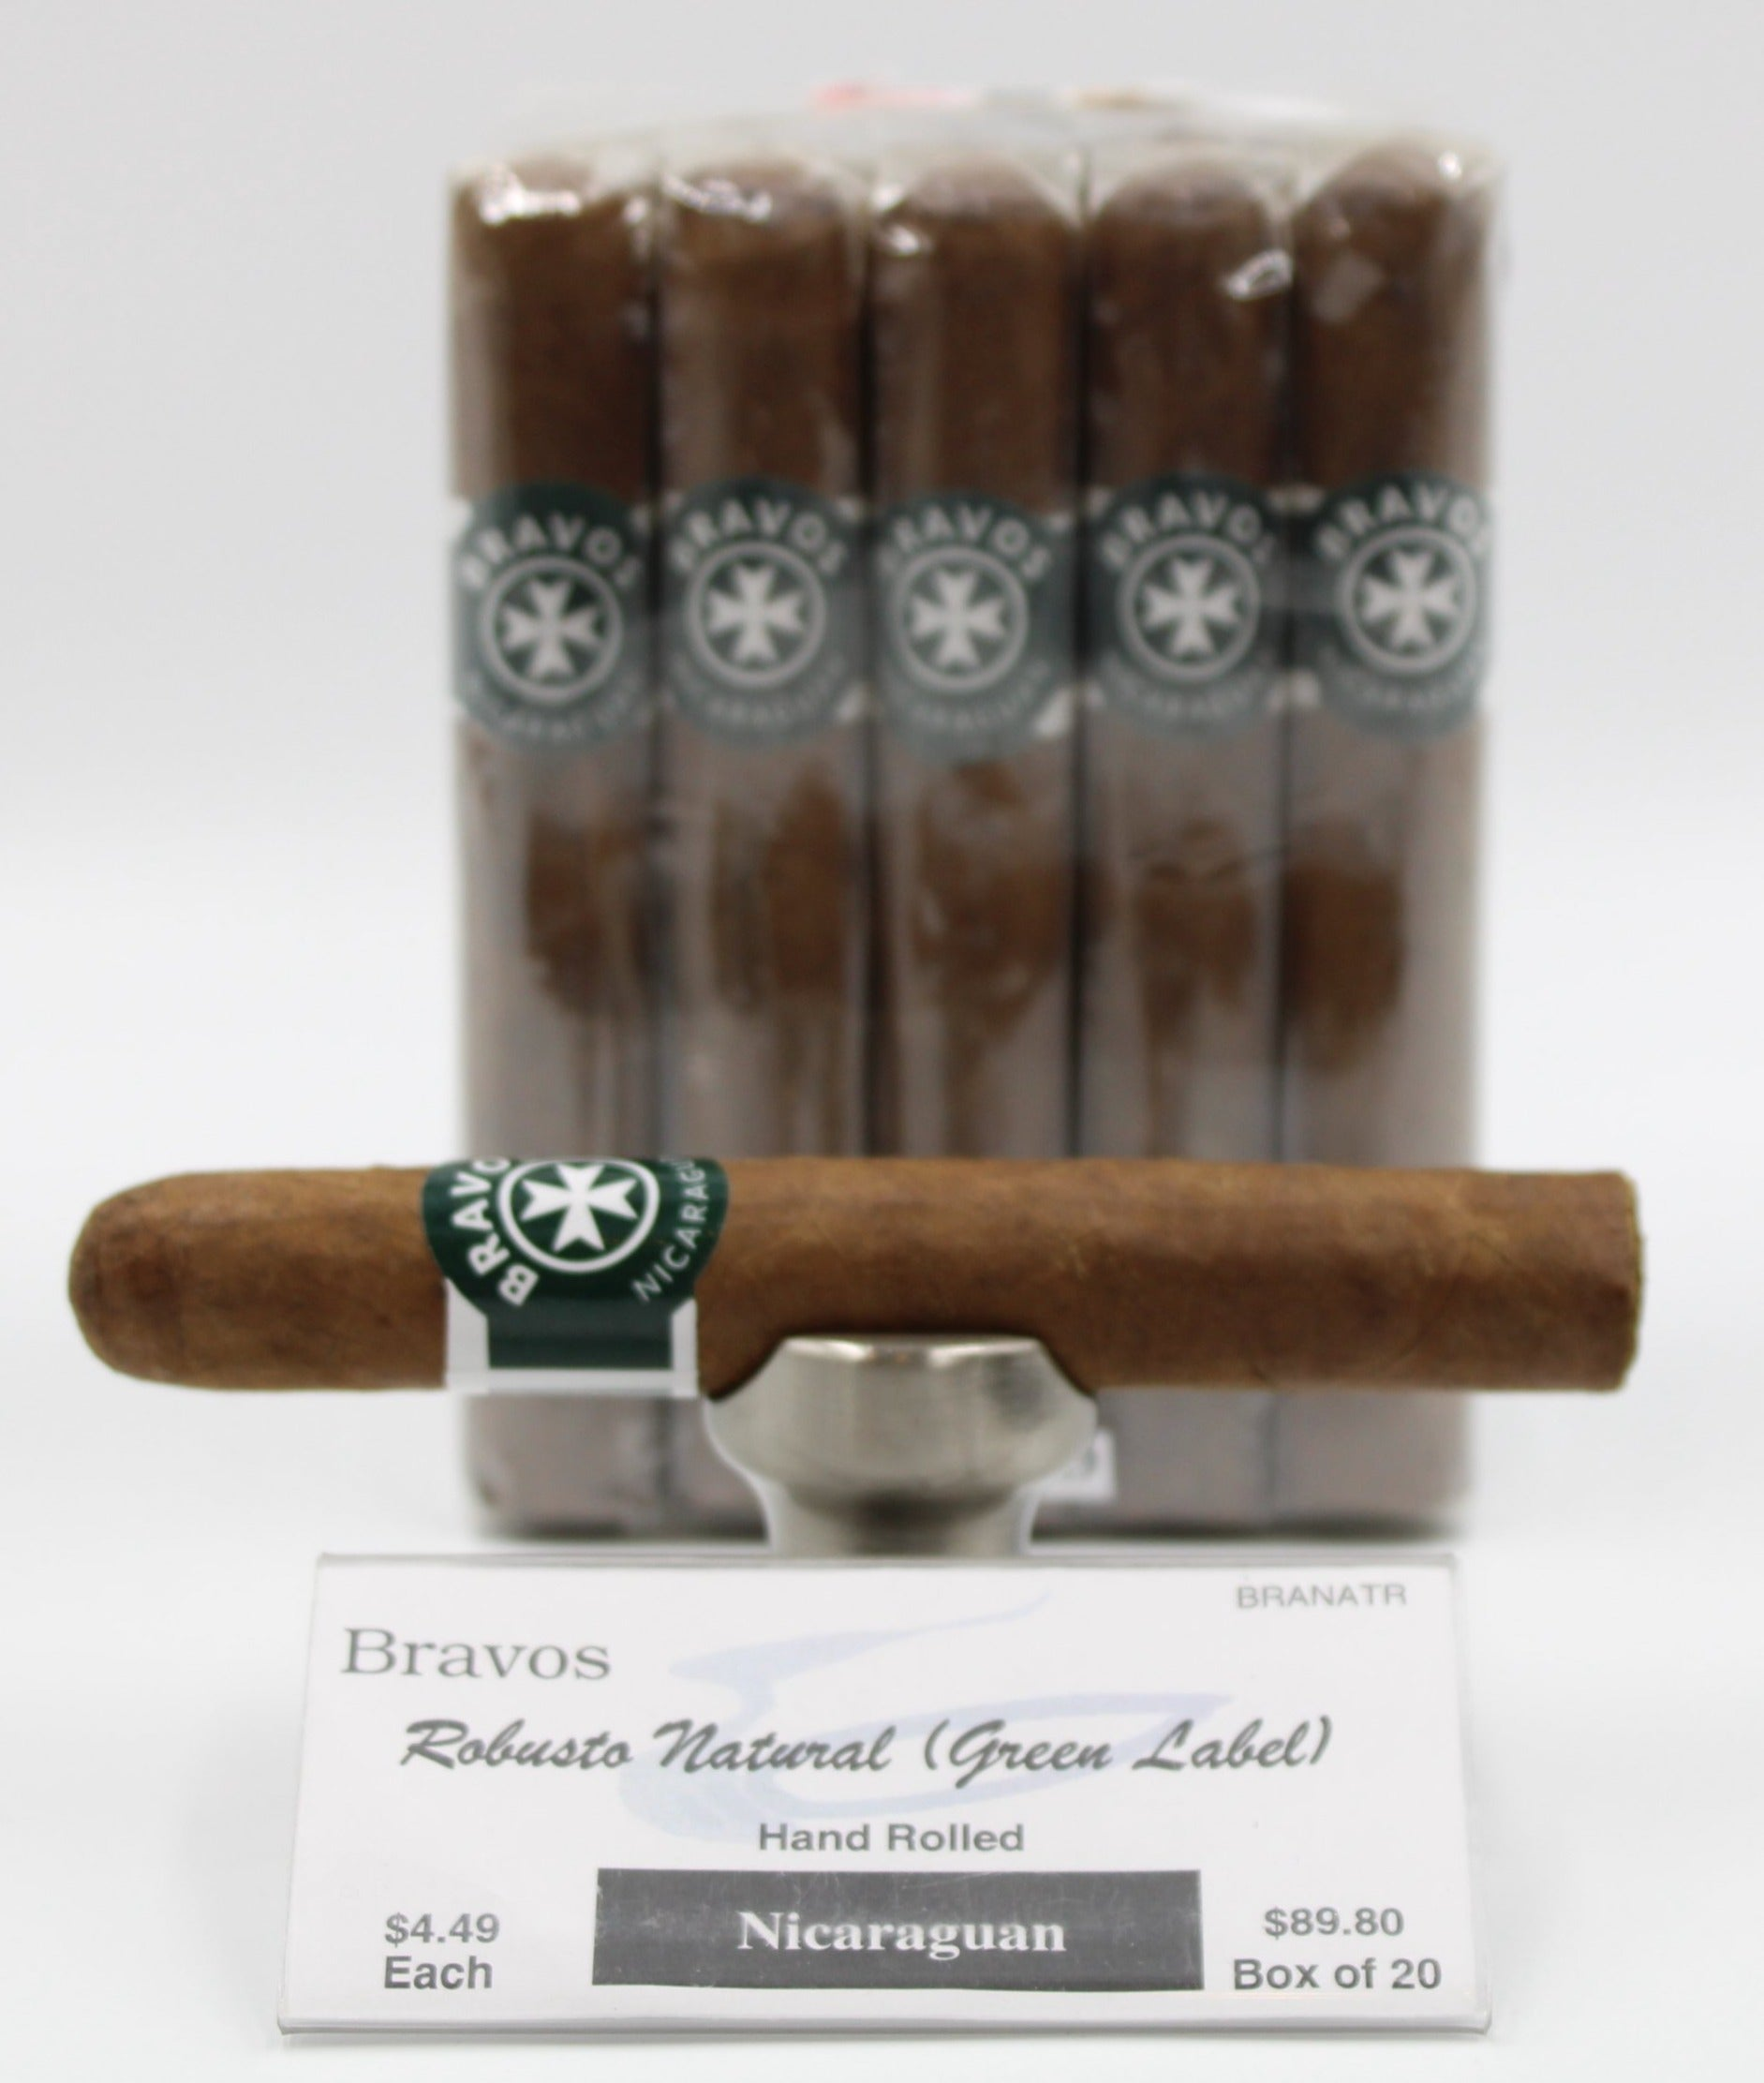 Bravos Robusto Habano Natural...SAVE 10%